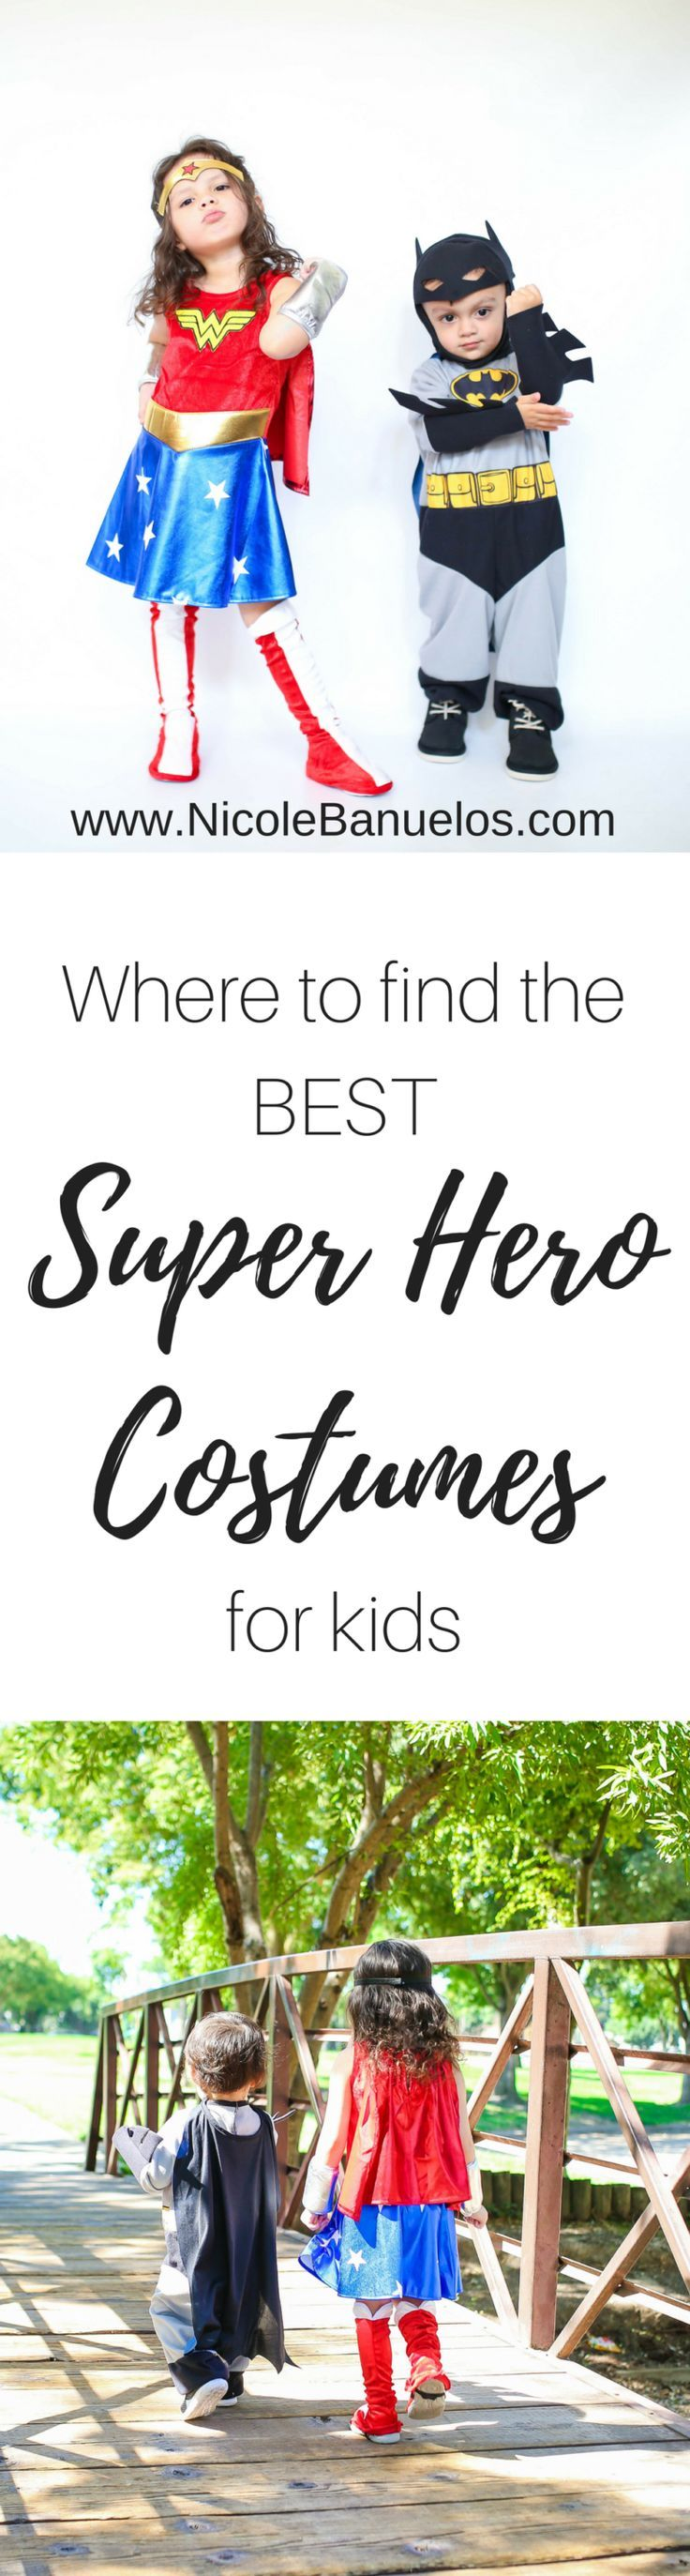 Where to find the BEST Superhero costumes for kids